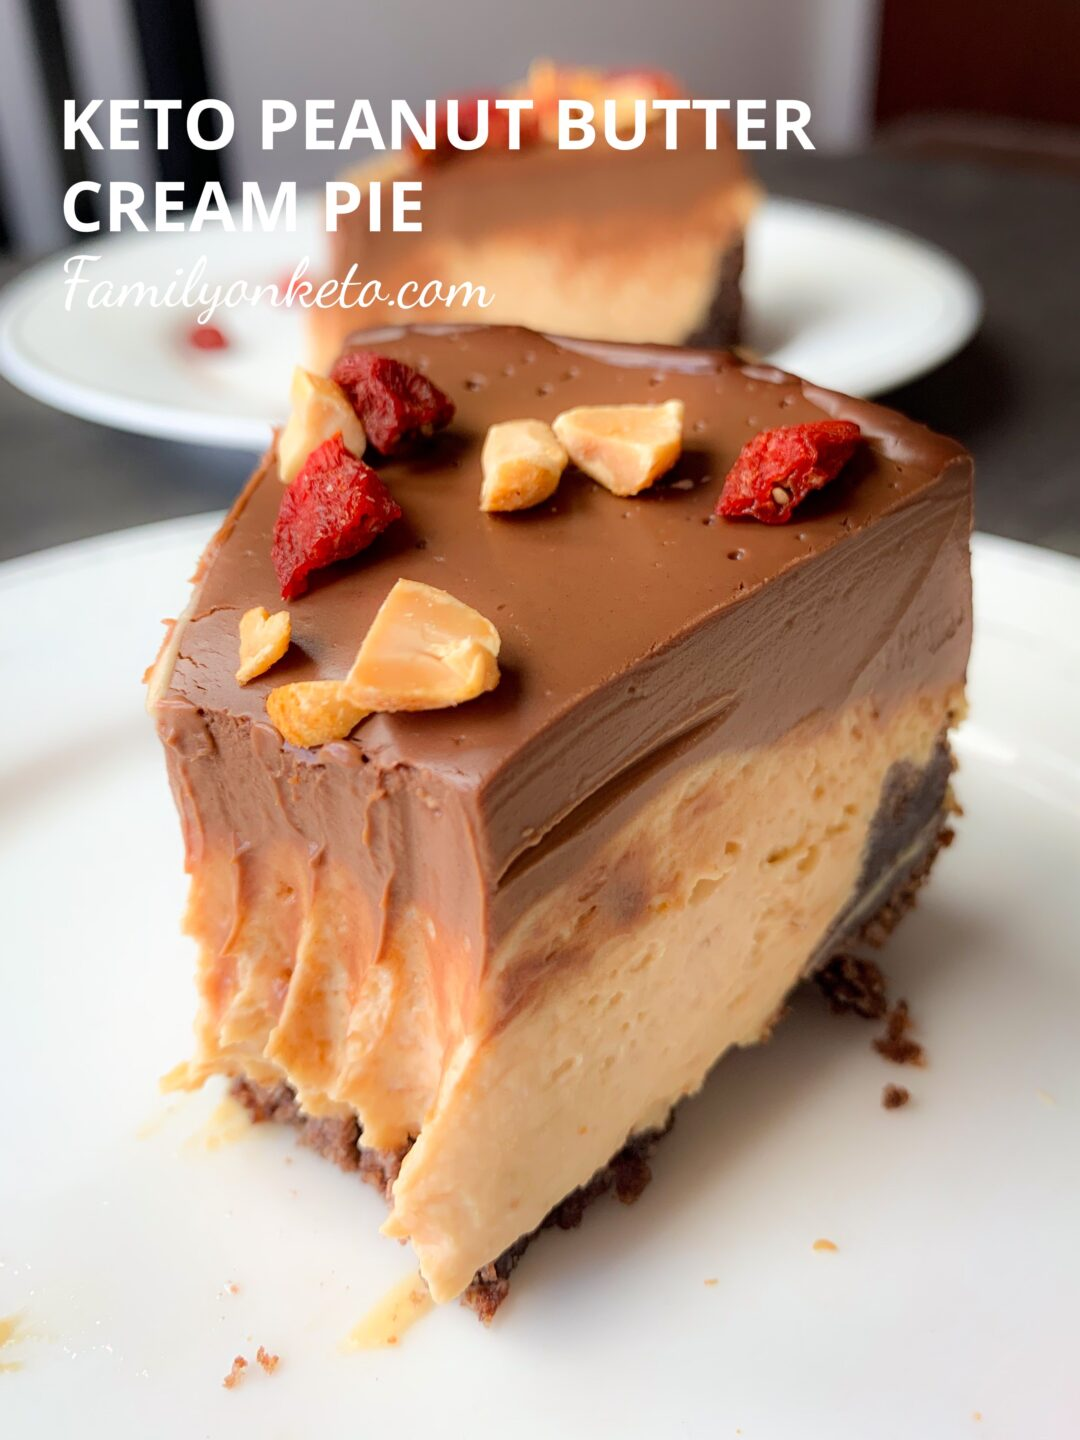 Picture of keto peanut butter cream pie